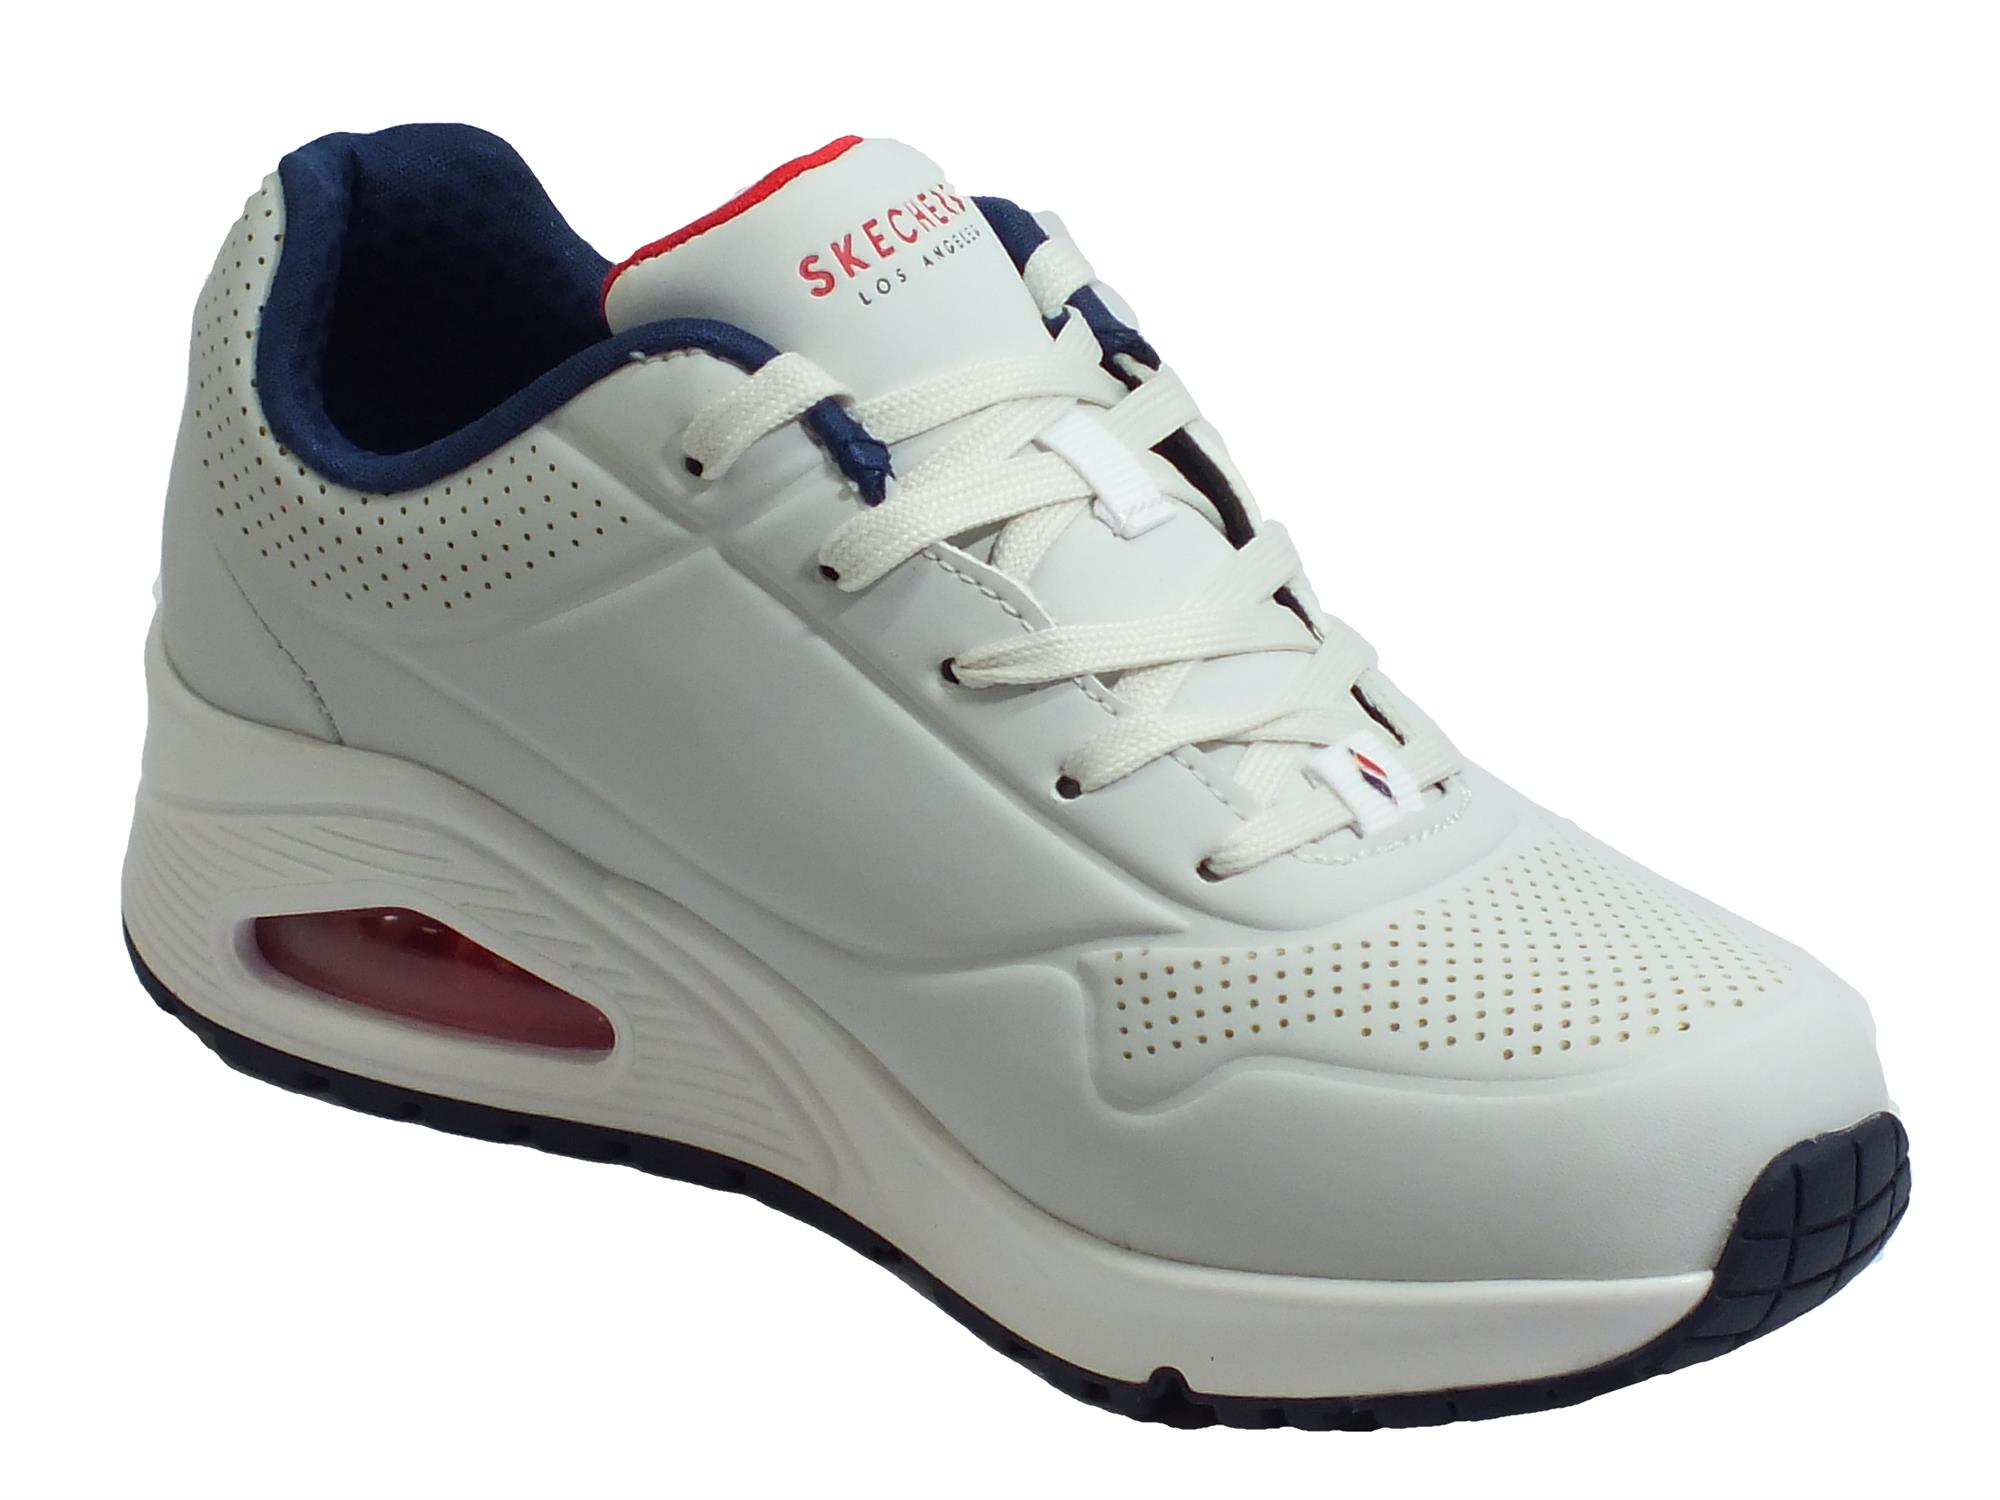 Skechers Street Los Angeles 73690WNVR Uno Stand On Air White Navy Red Scarpe Sportive Donna